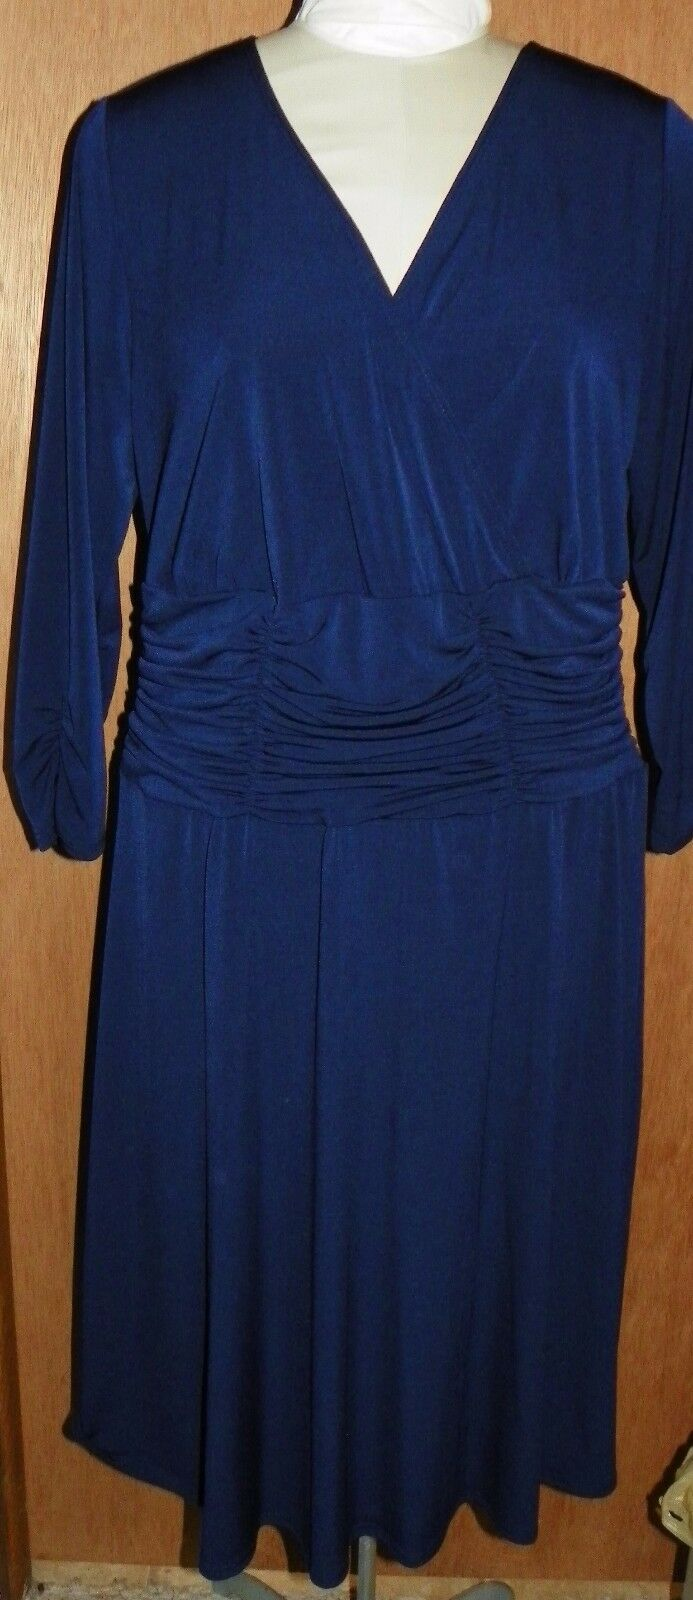 NY Collection Women's Navy bluee Knit Dress Plus Size 2X New w Tags  70 MSRP